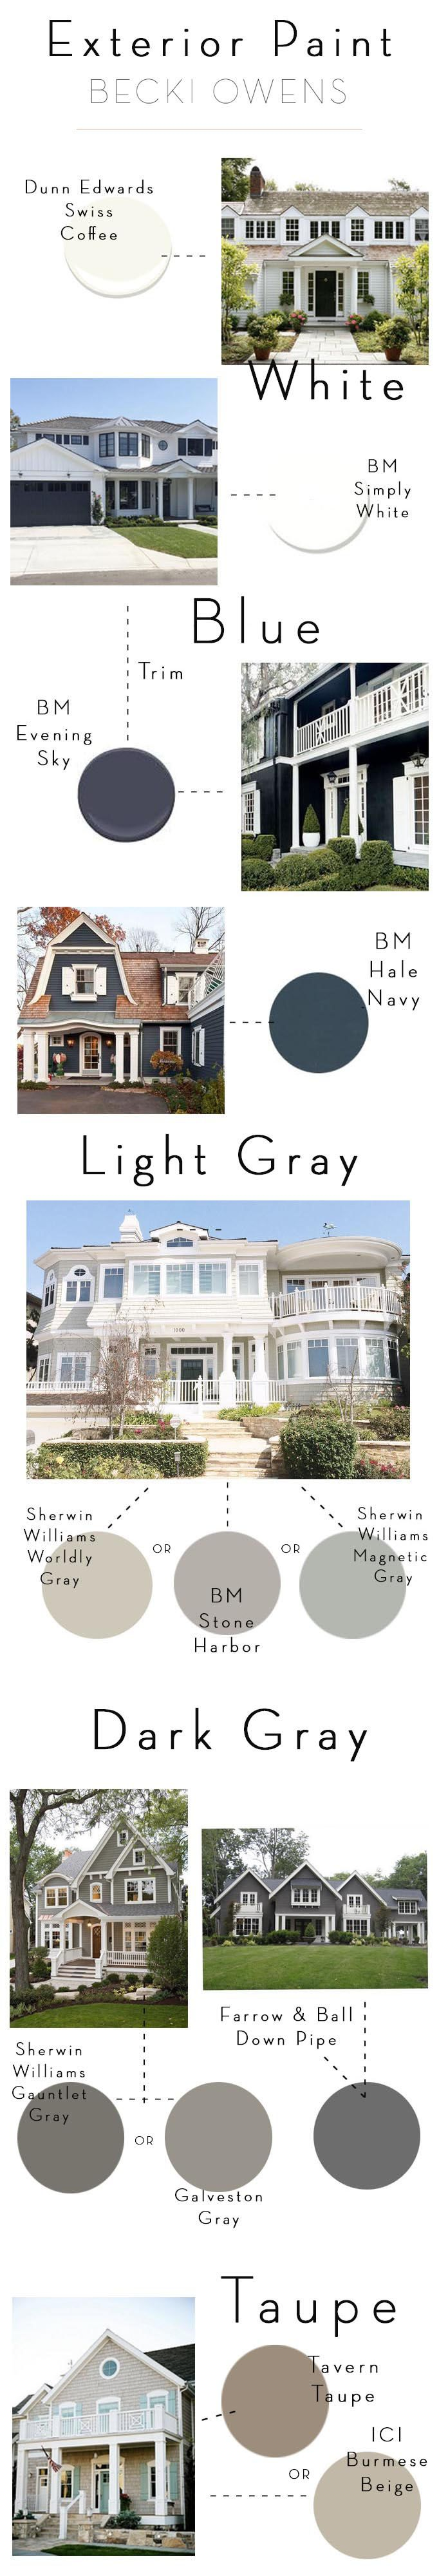 Choosing Exterior Paint Colors - Becki Owens